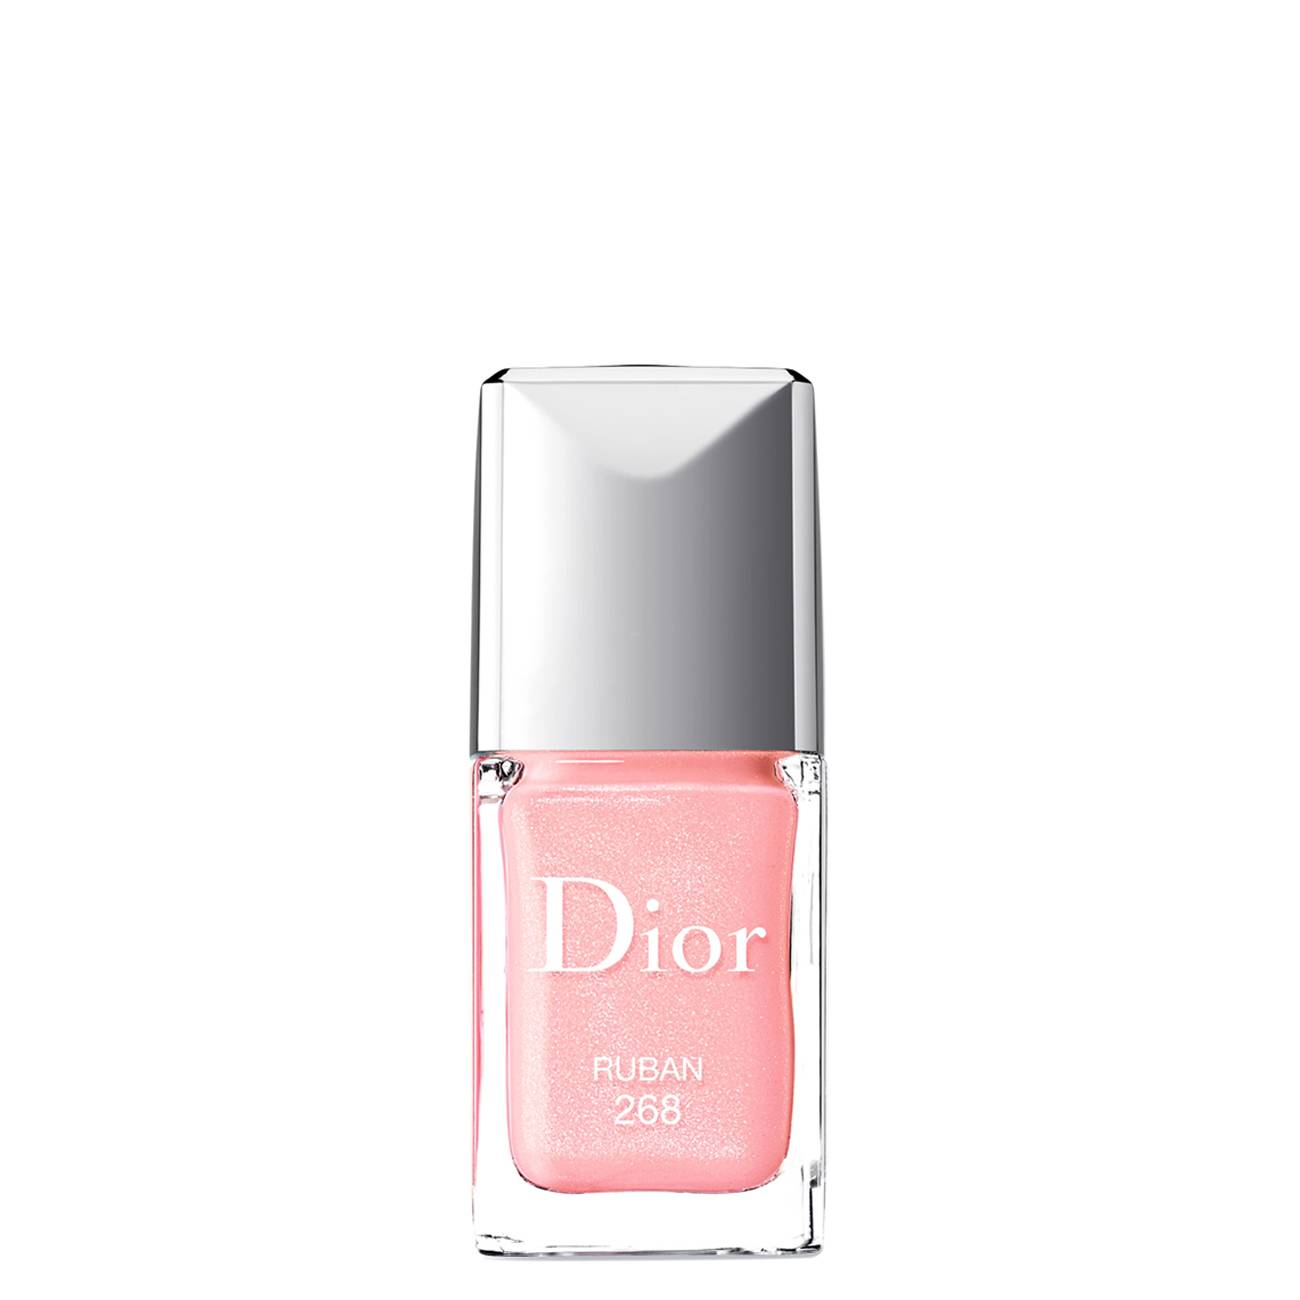 Vernis 268 10 Ml Dior imagine 2021 bestvalue.eu